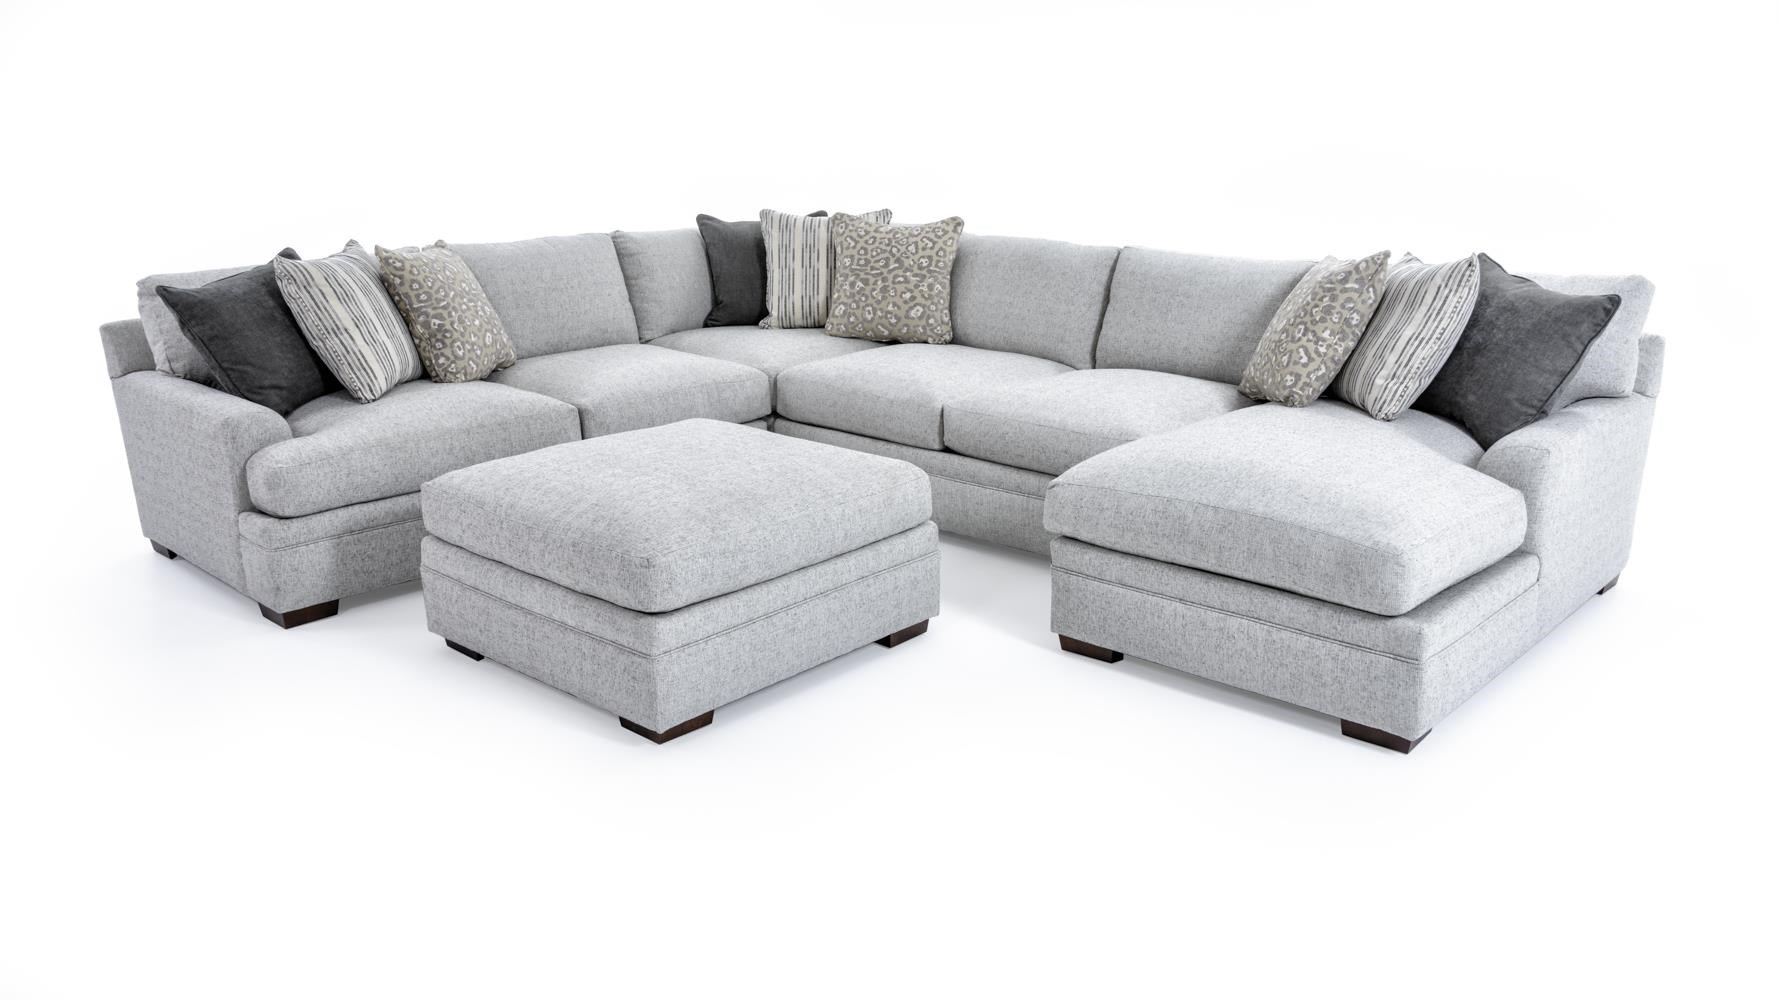 Aria Designs Vance 5 Pc Sectional Sofa - Item Number: 6033 Sect Ott